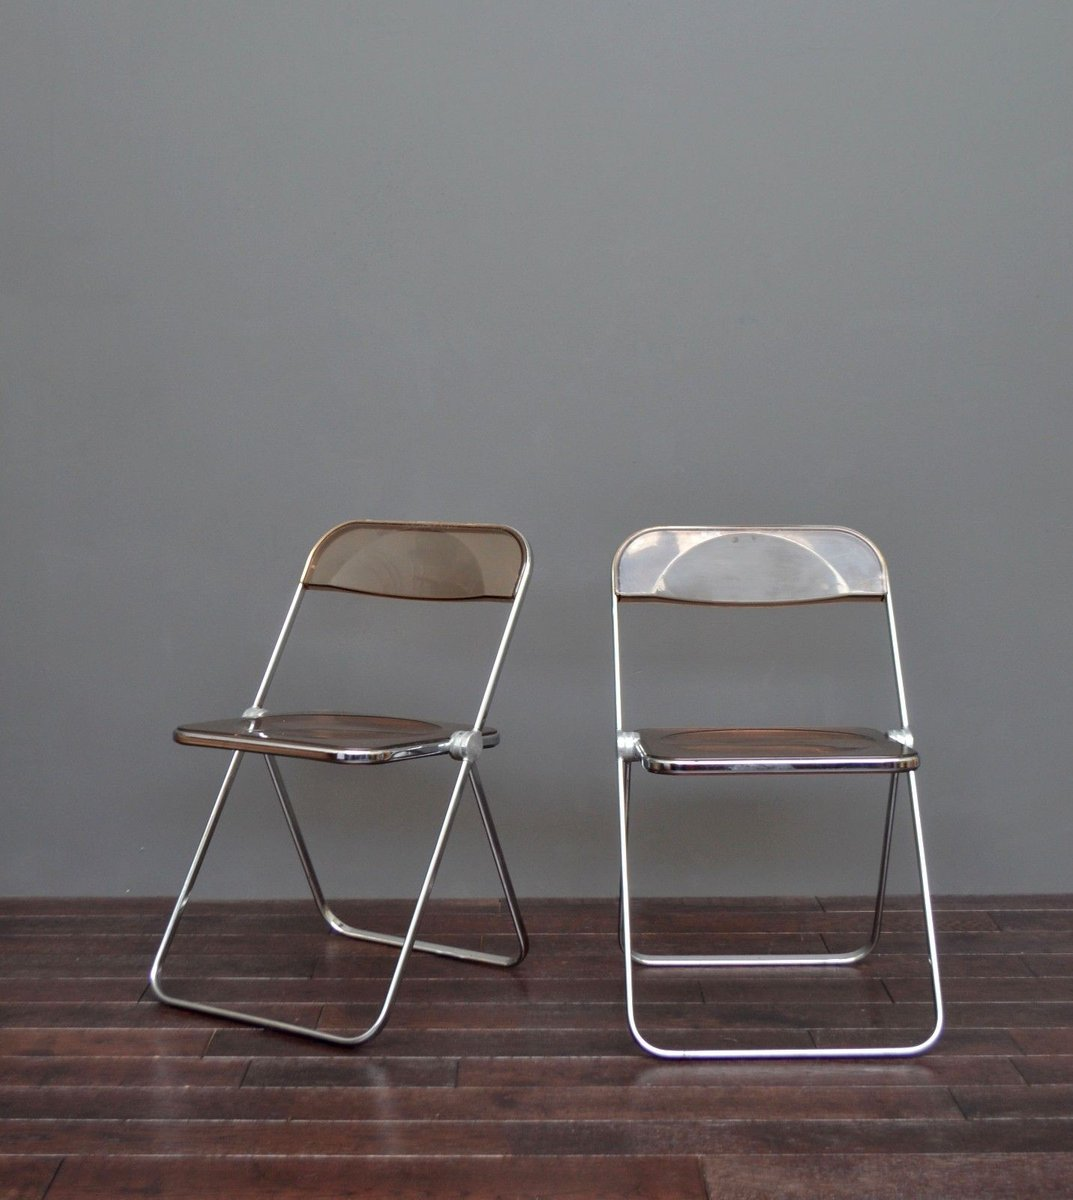 Chrome U0026 Perspex Folding Chairs By Giancarlo Pirett For Castelli, 1960s,  Set Of 2 For Sale At Pamono